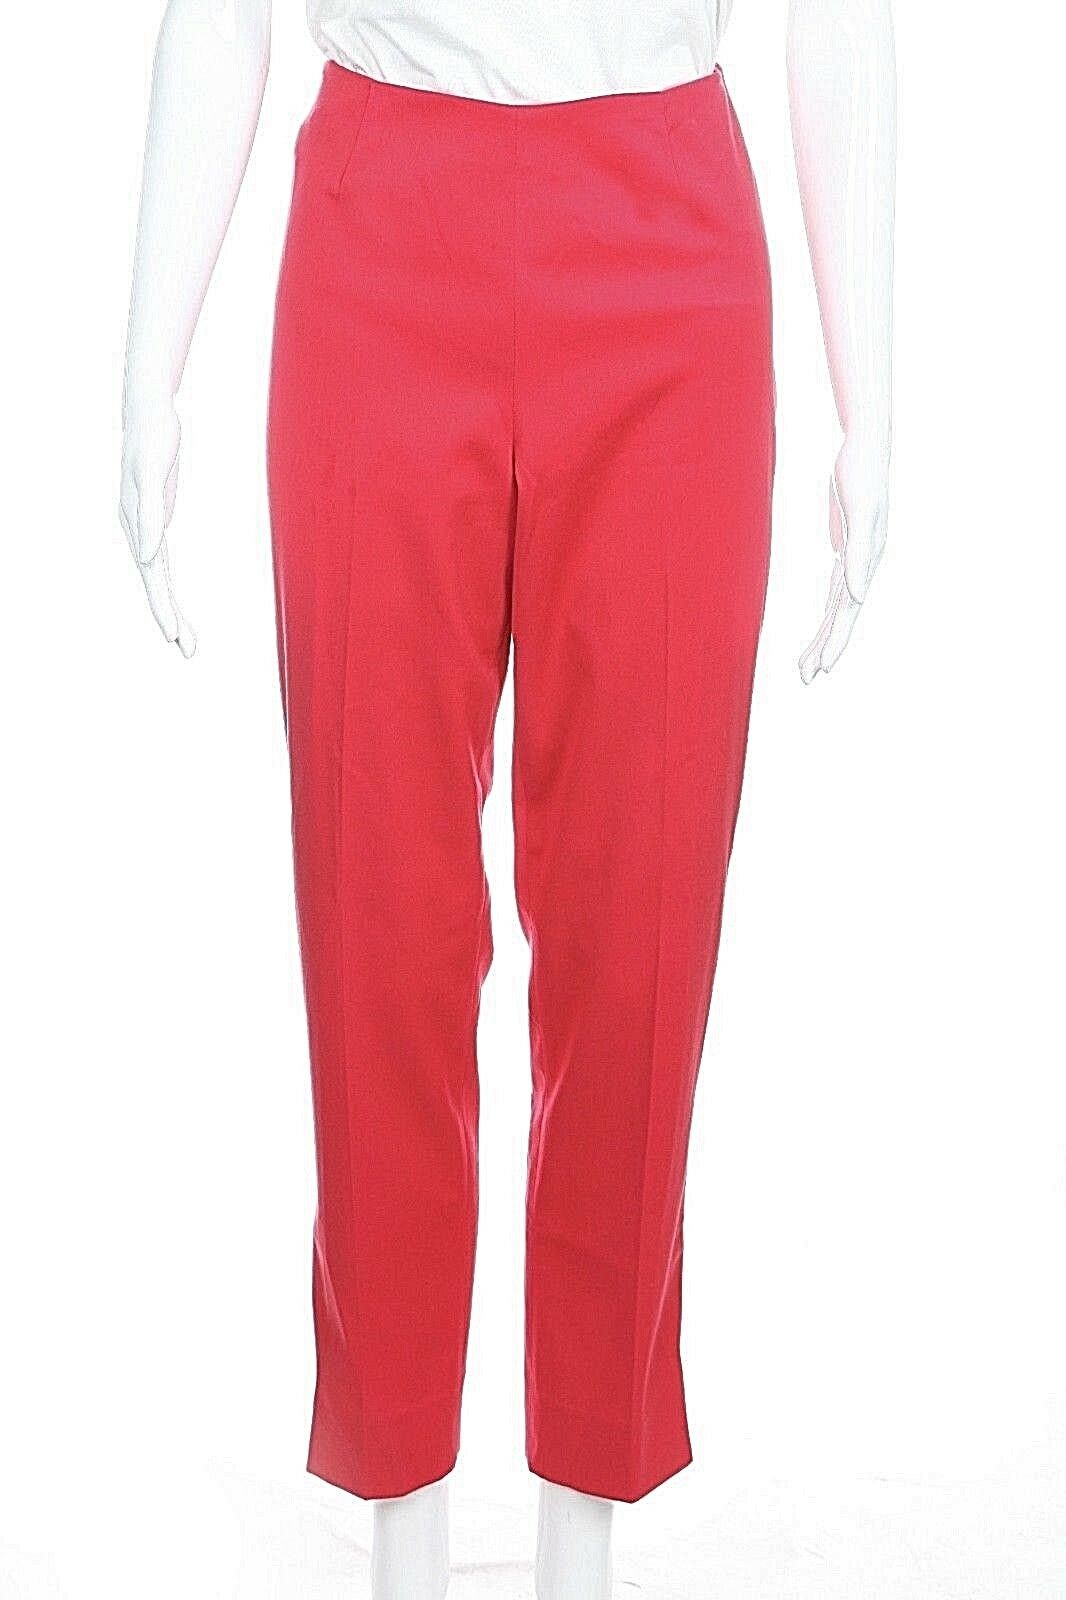 PEACE OF CLOTH Cropped Pants Size 4 Red Capris Ankle Pleated 27  Dressy